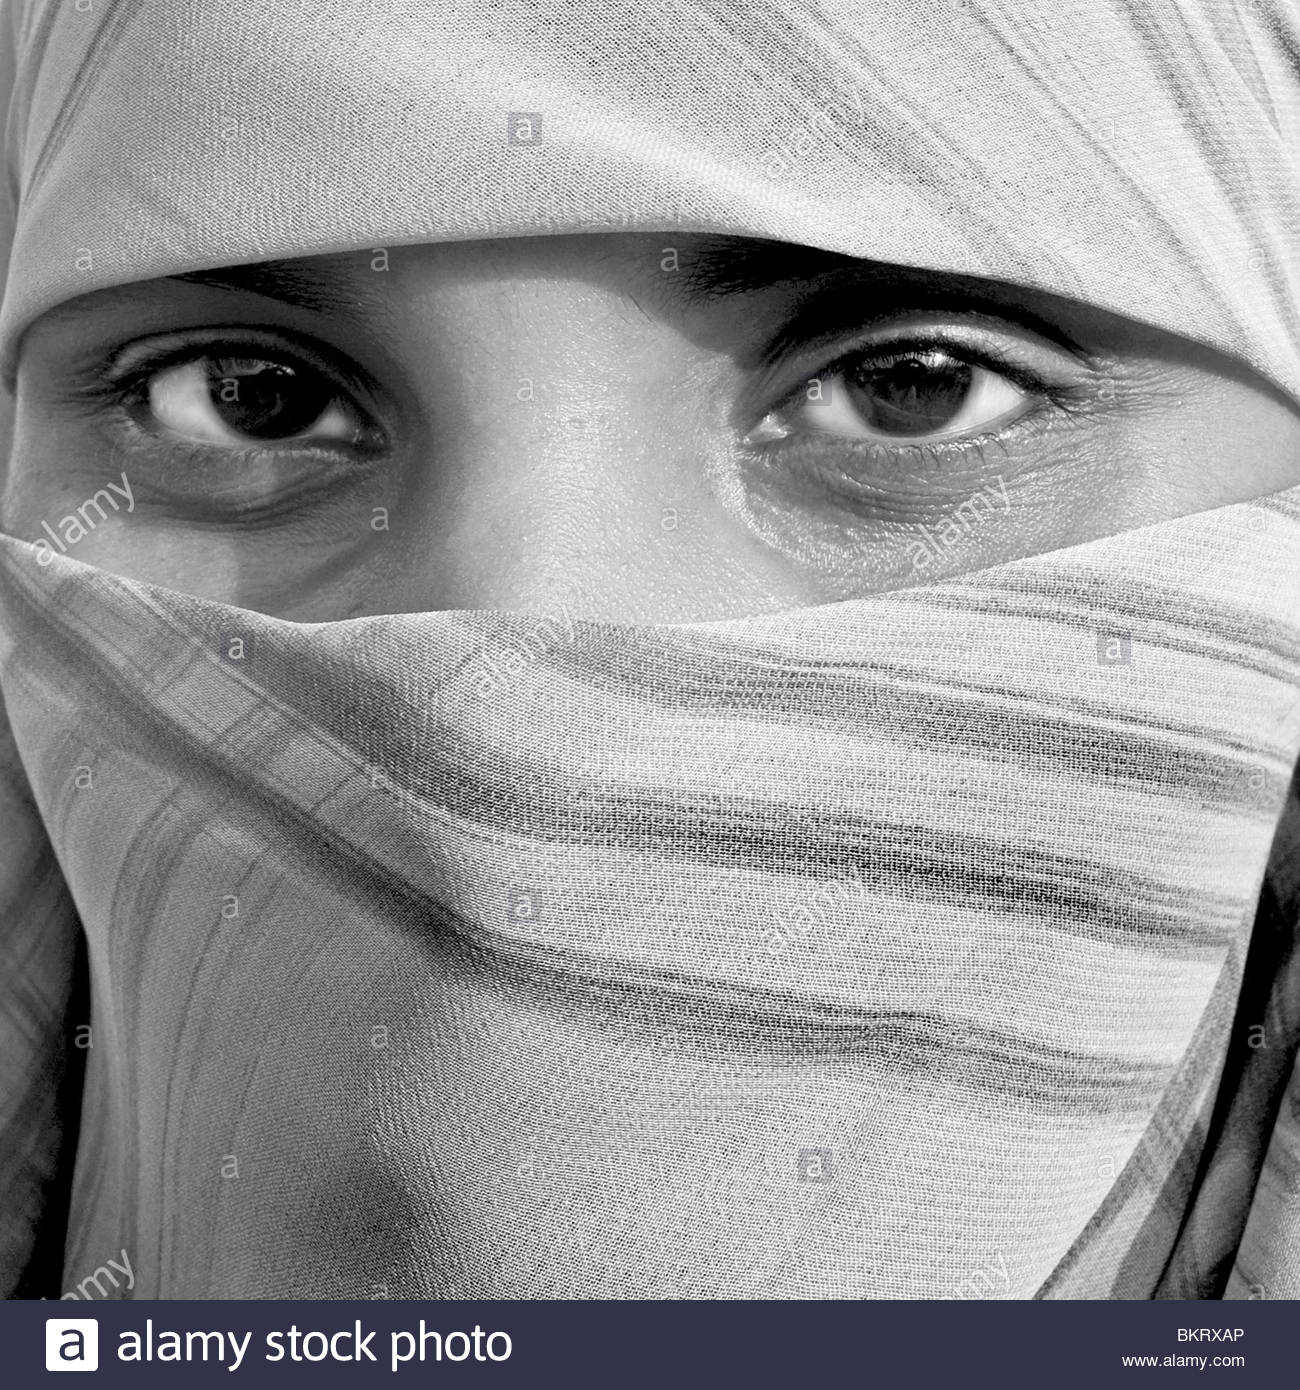 eyes of a young woman,Comilla,Bangladesh' - Stock Image